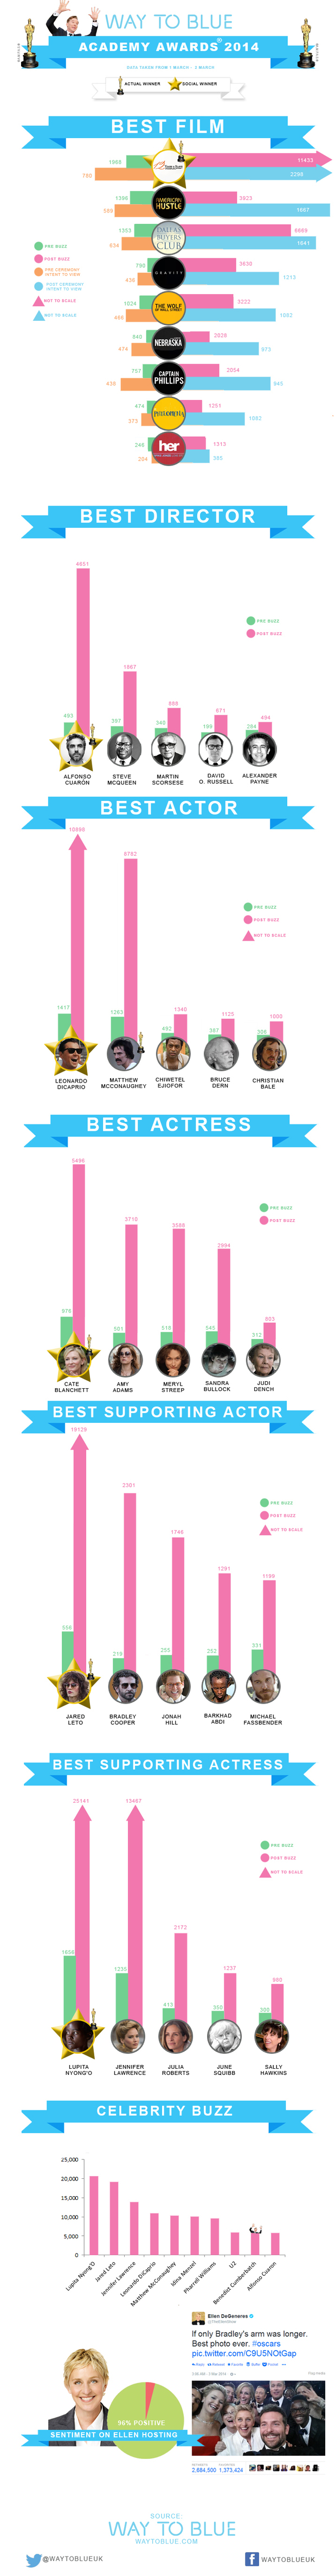 Oscars 2014 social media buzz